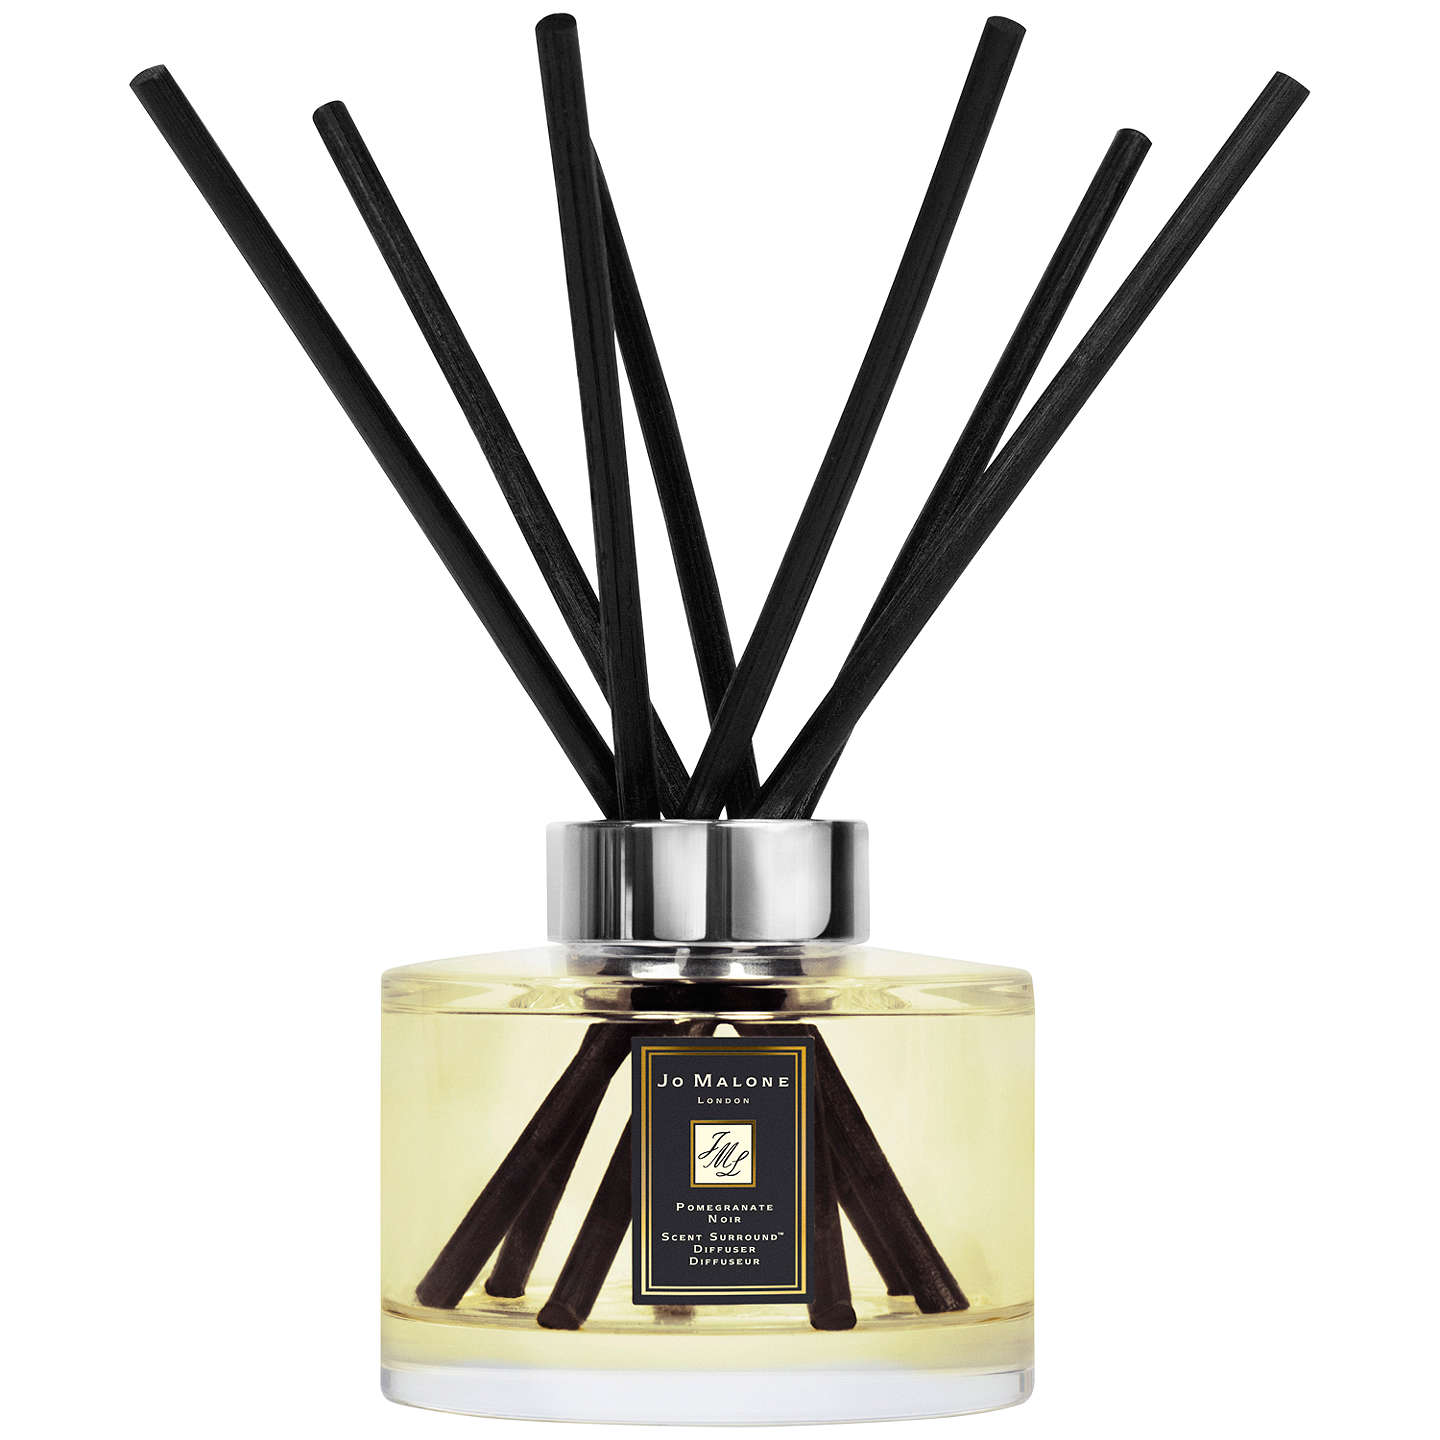 BuyJo Malone London Pomegranate Noir Scent Surround™ Diffuser, 165ml Online at johnlewis.com